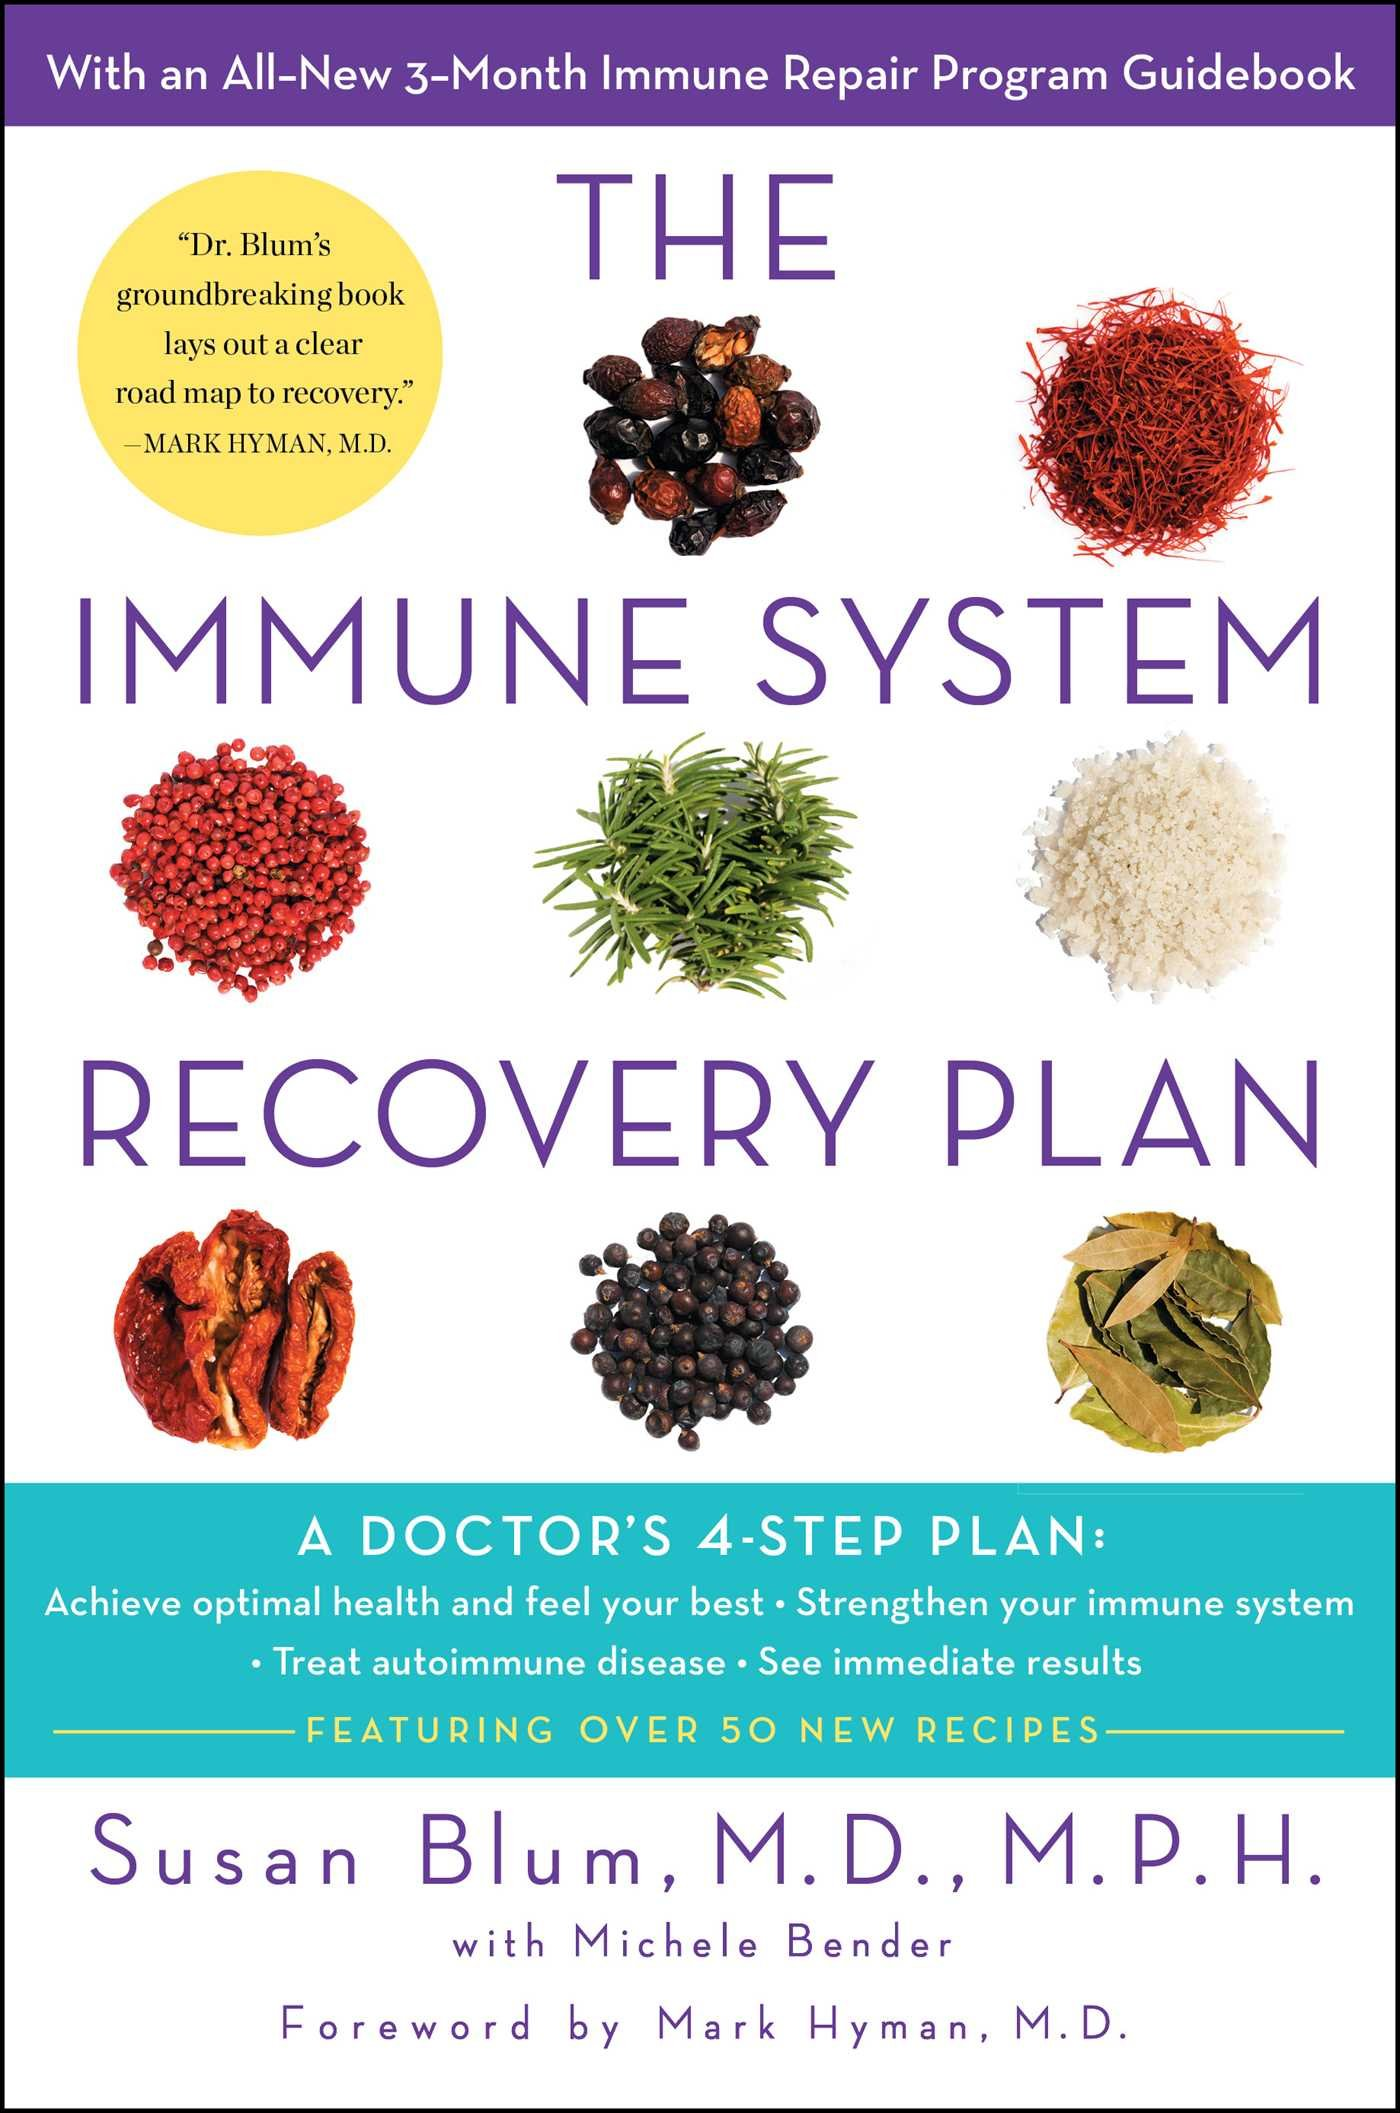 "the immune system recovery plan: a doctor's 4-step program to treat autoimmune disease - By Susan Blum, MDAre you constantly exhausted?• Do you frequently feel sick?• Are you hot when others are cold, or cold when everyone else is warm?• Do you have trouble thinking clearly, aka ""brain fog""?• Do you often feel irritable?• Are you experiencing hair loss, dry skin, or unexplained weight fluctuation?• Do your joints ache or swell but you don't know why?• Do you have an overall sense of not feeling your best, but it has been going on so long it's actually normal to you?IF you answered yes to any of these questions, you may have an autoimmune disease, and this book is the ""medicine"" you need. Among the most prevalent forms of chronic illness in this country, autoimmune disease affects nearly 23.5 million Americans. This epidemic—a result of the toxins in our diet; exposure to chemicals, heavy metals, and antibiotics; and unprecedented stress levels—has caused millions to suffer from autoimmune conditions such as Graves' disease, rheumatoid arthritis, Crohn's disease, celiac disease, lupus, and more. In The Immune System Recovery Plan, Dr. Susan Blum, one of the most sought-after experts in the field of functional medicine, shares the four-step program she used to treat her own serious autoimmune condition and help countless patients reverse their symptoms, heal their immune systems, and prevent future illness.DR. BLUM'S INNOVATIVE METHOD FOCUSES ON:• Using food as medicine• Understanding the stress connection• Healing your gut and digestive system• Optimizing liver functionEach of these sections includes an interactive workbook to help you determine and create your own personal treatment program. Also included are recipes for simple, easy-to-prepare dishes to jump-start the healing process.The Immune System Recovery Plan is a revolutionary way for people to balance their immune systems, transform their health, and live fuller, happier lives."